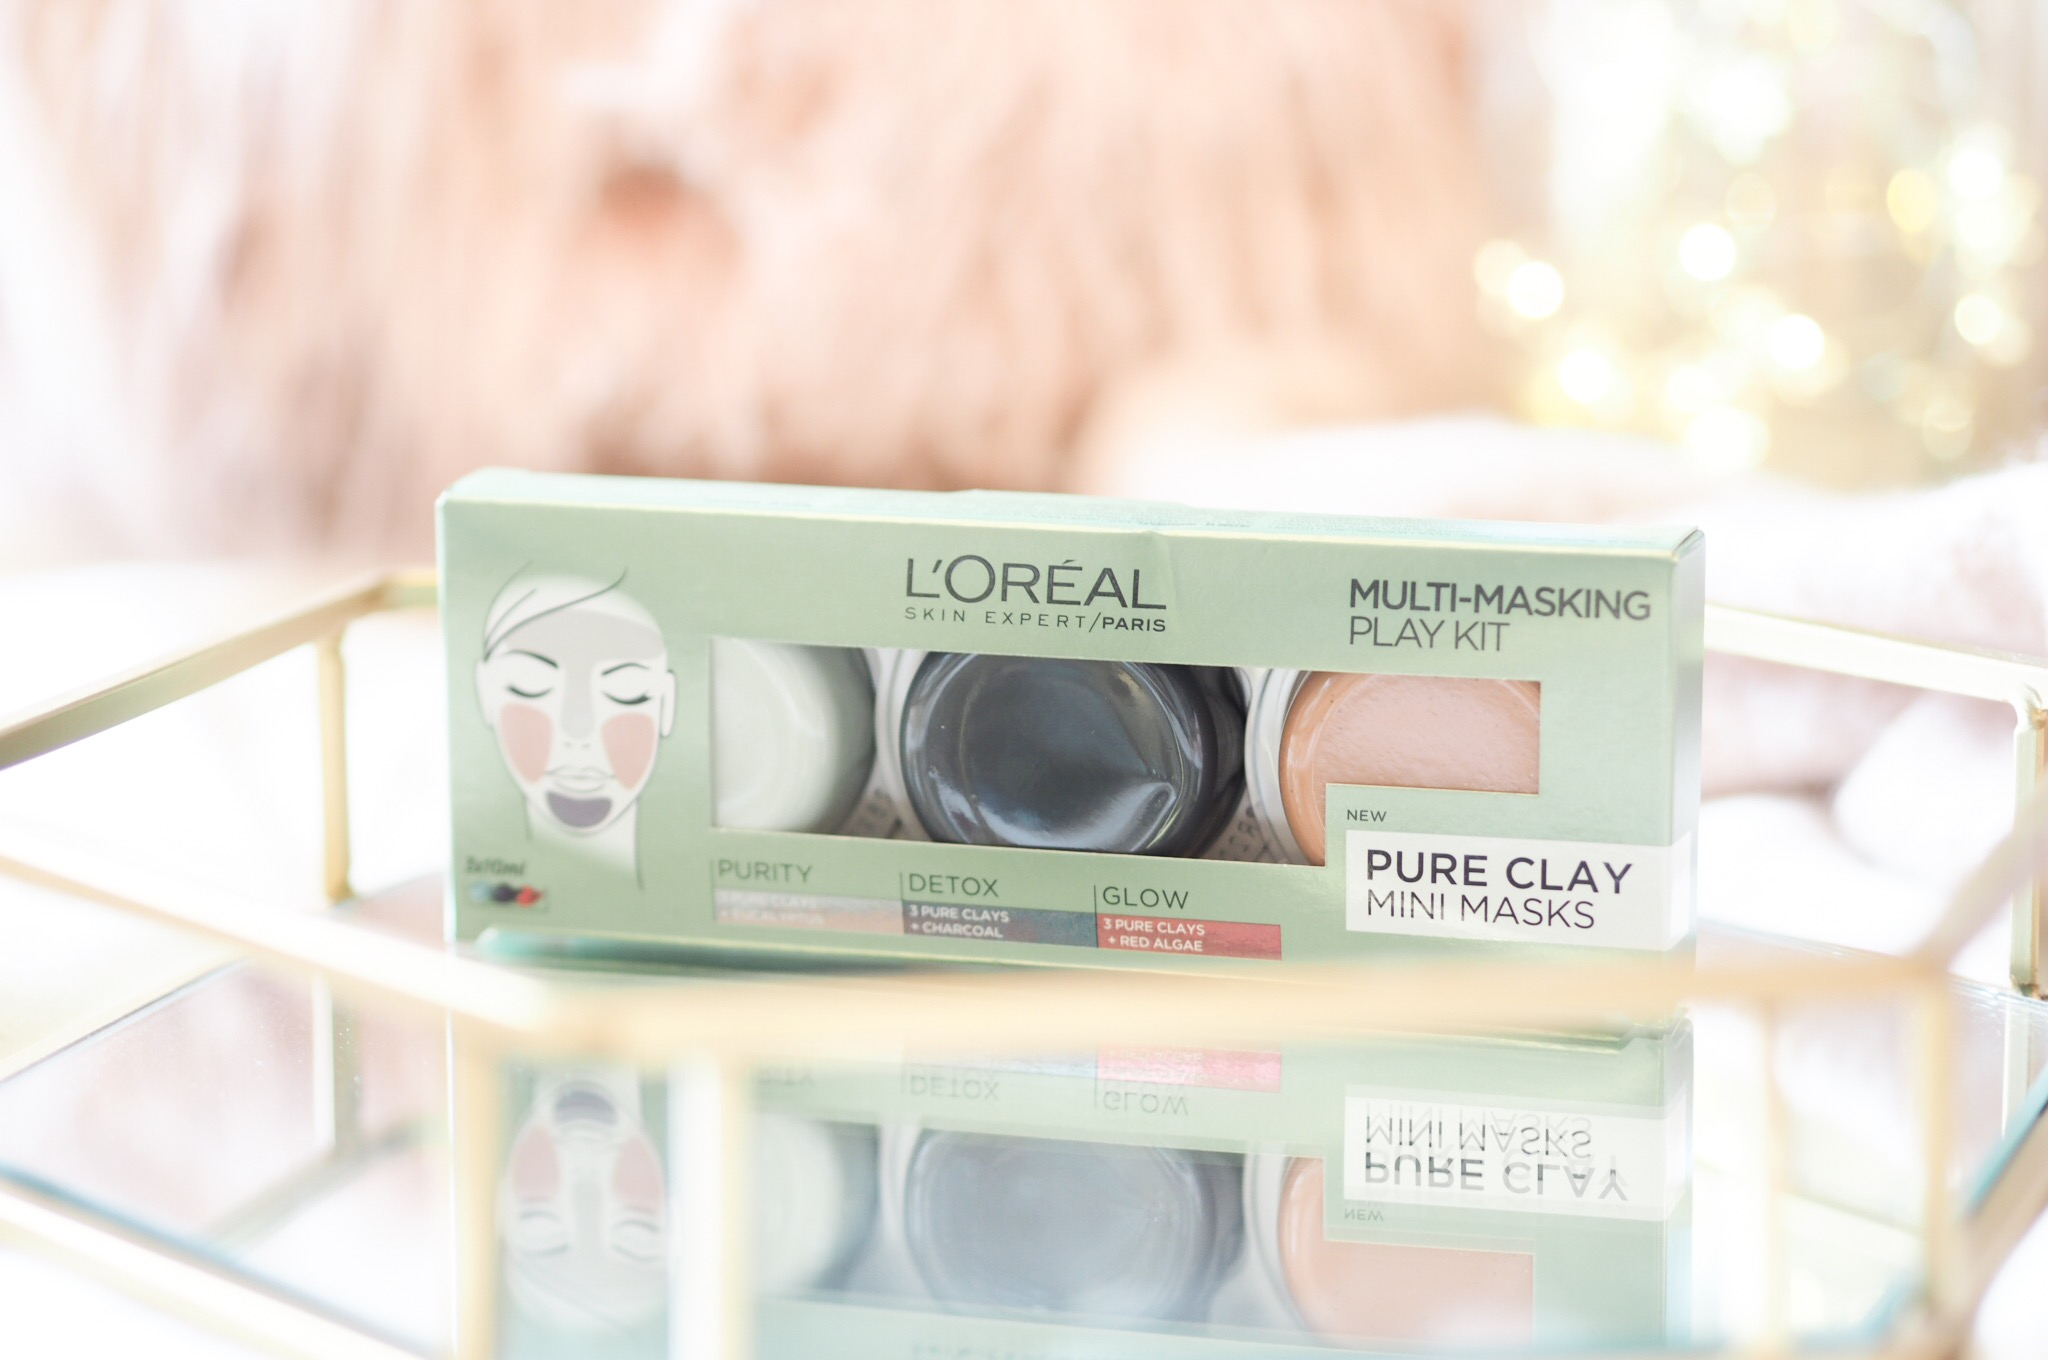 L'Oreal Multi Masking Play Kit